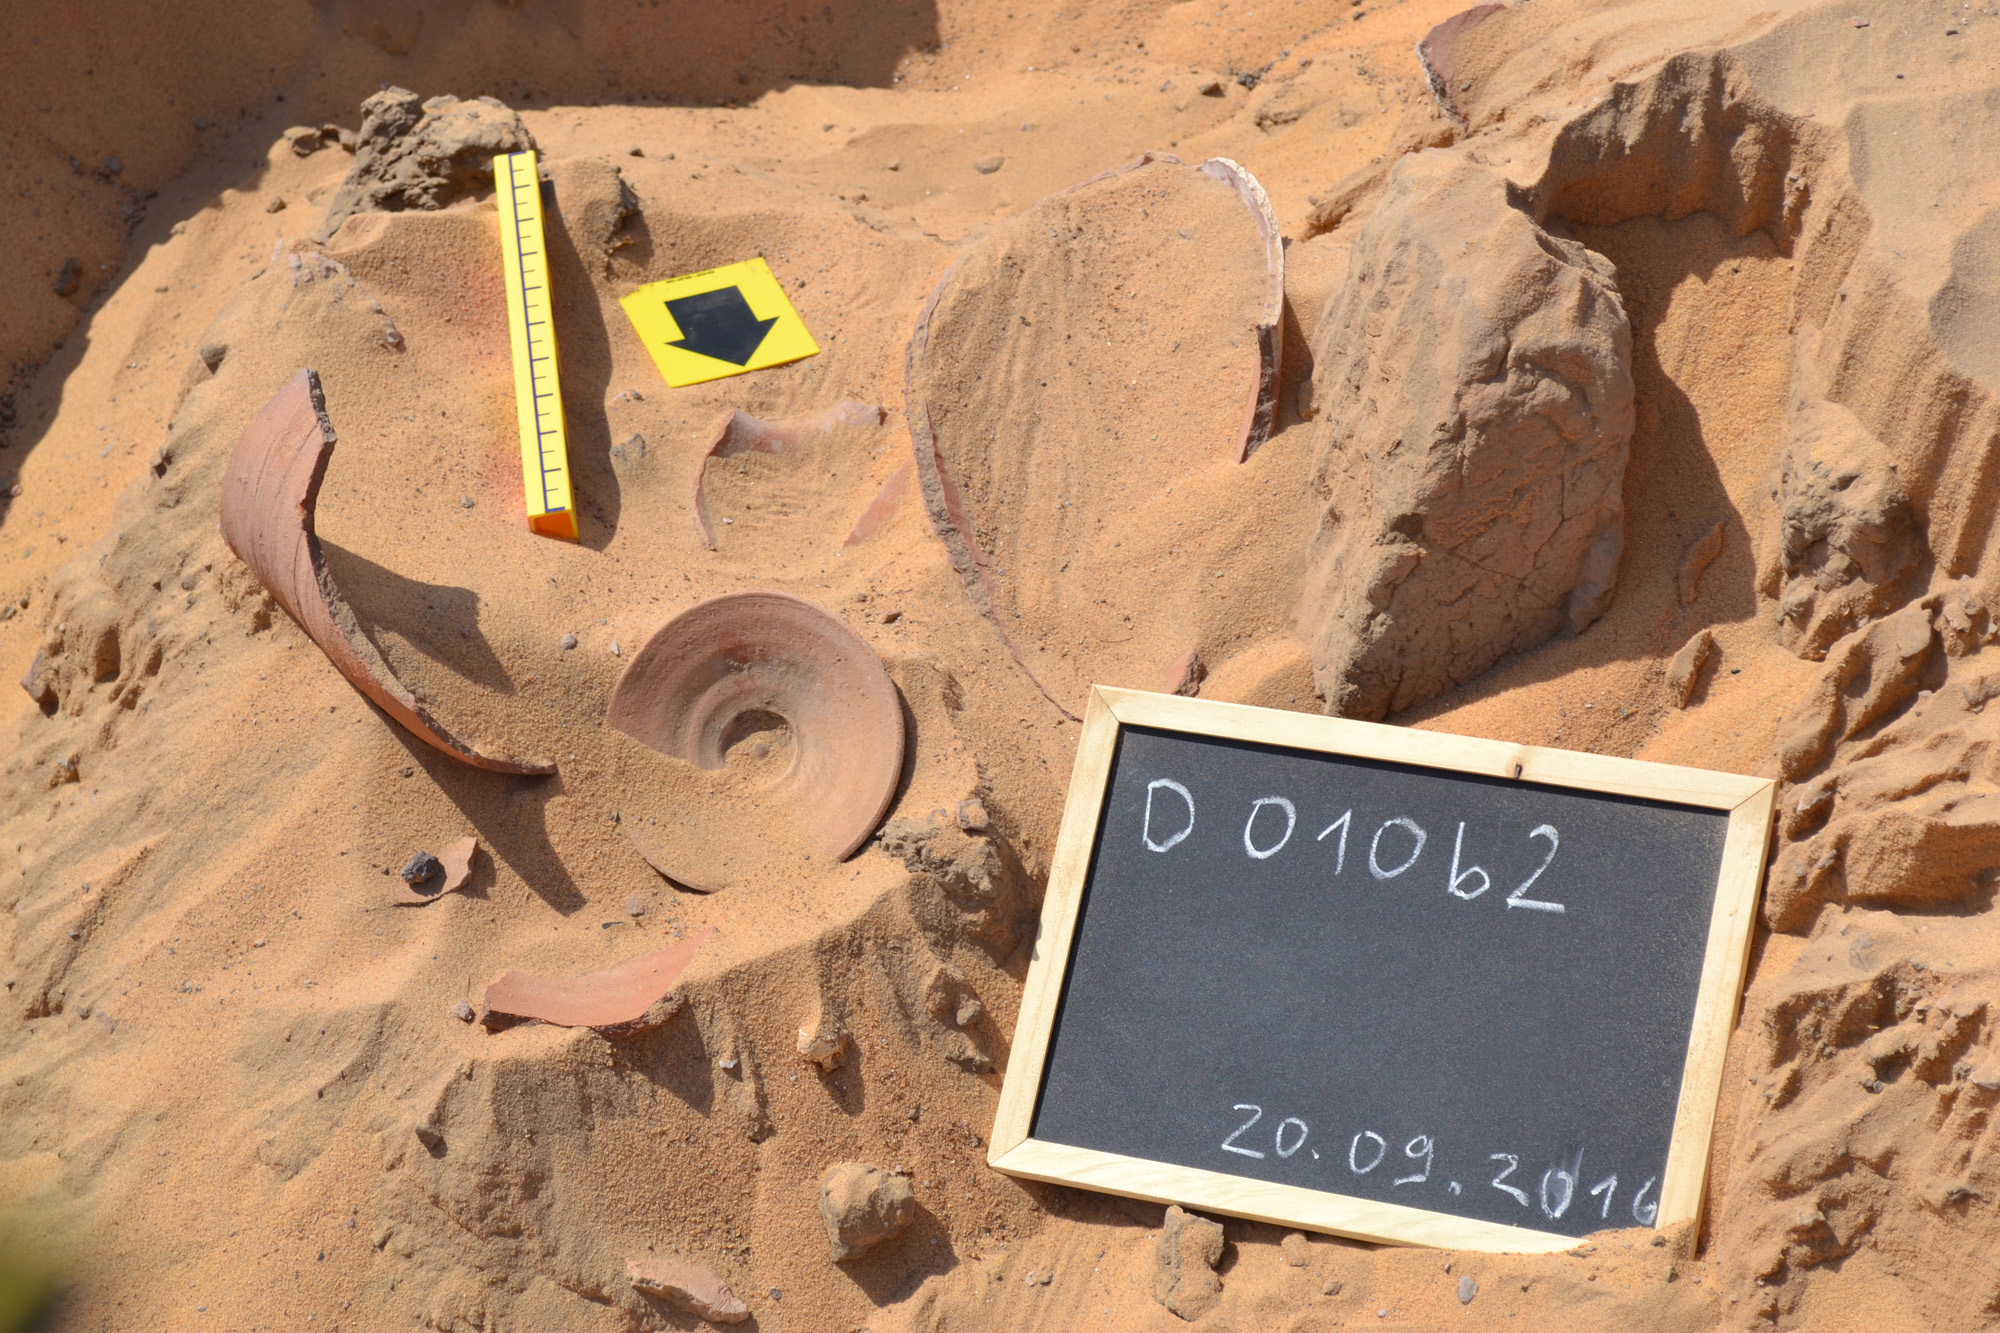 Pottery cache in situ at the Qubbet el-Hawa